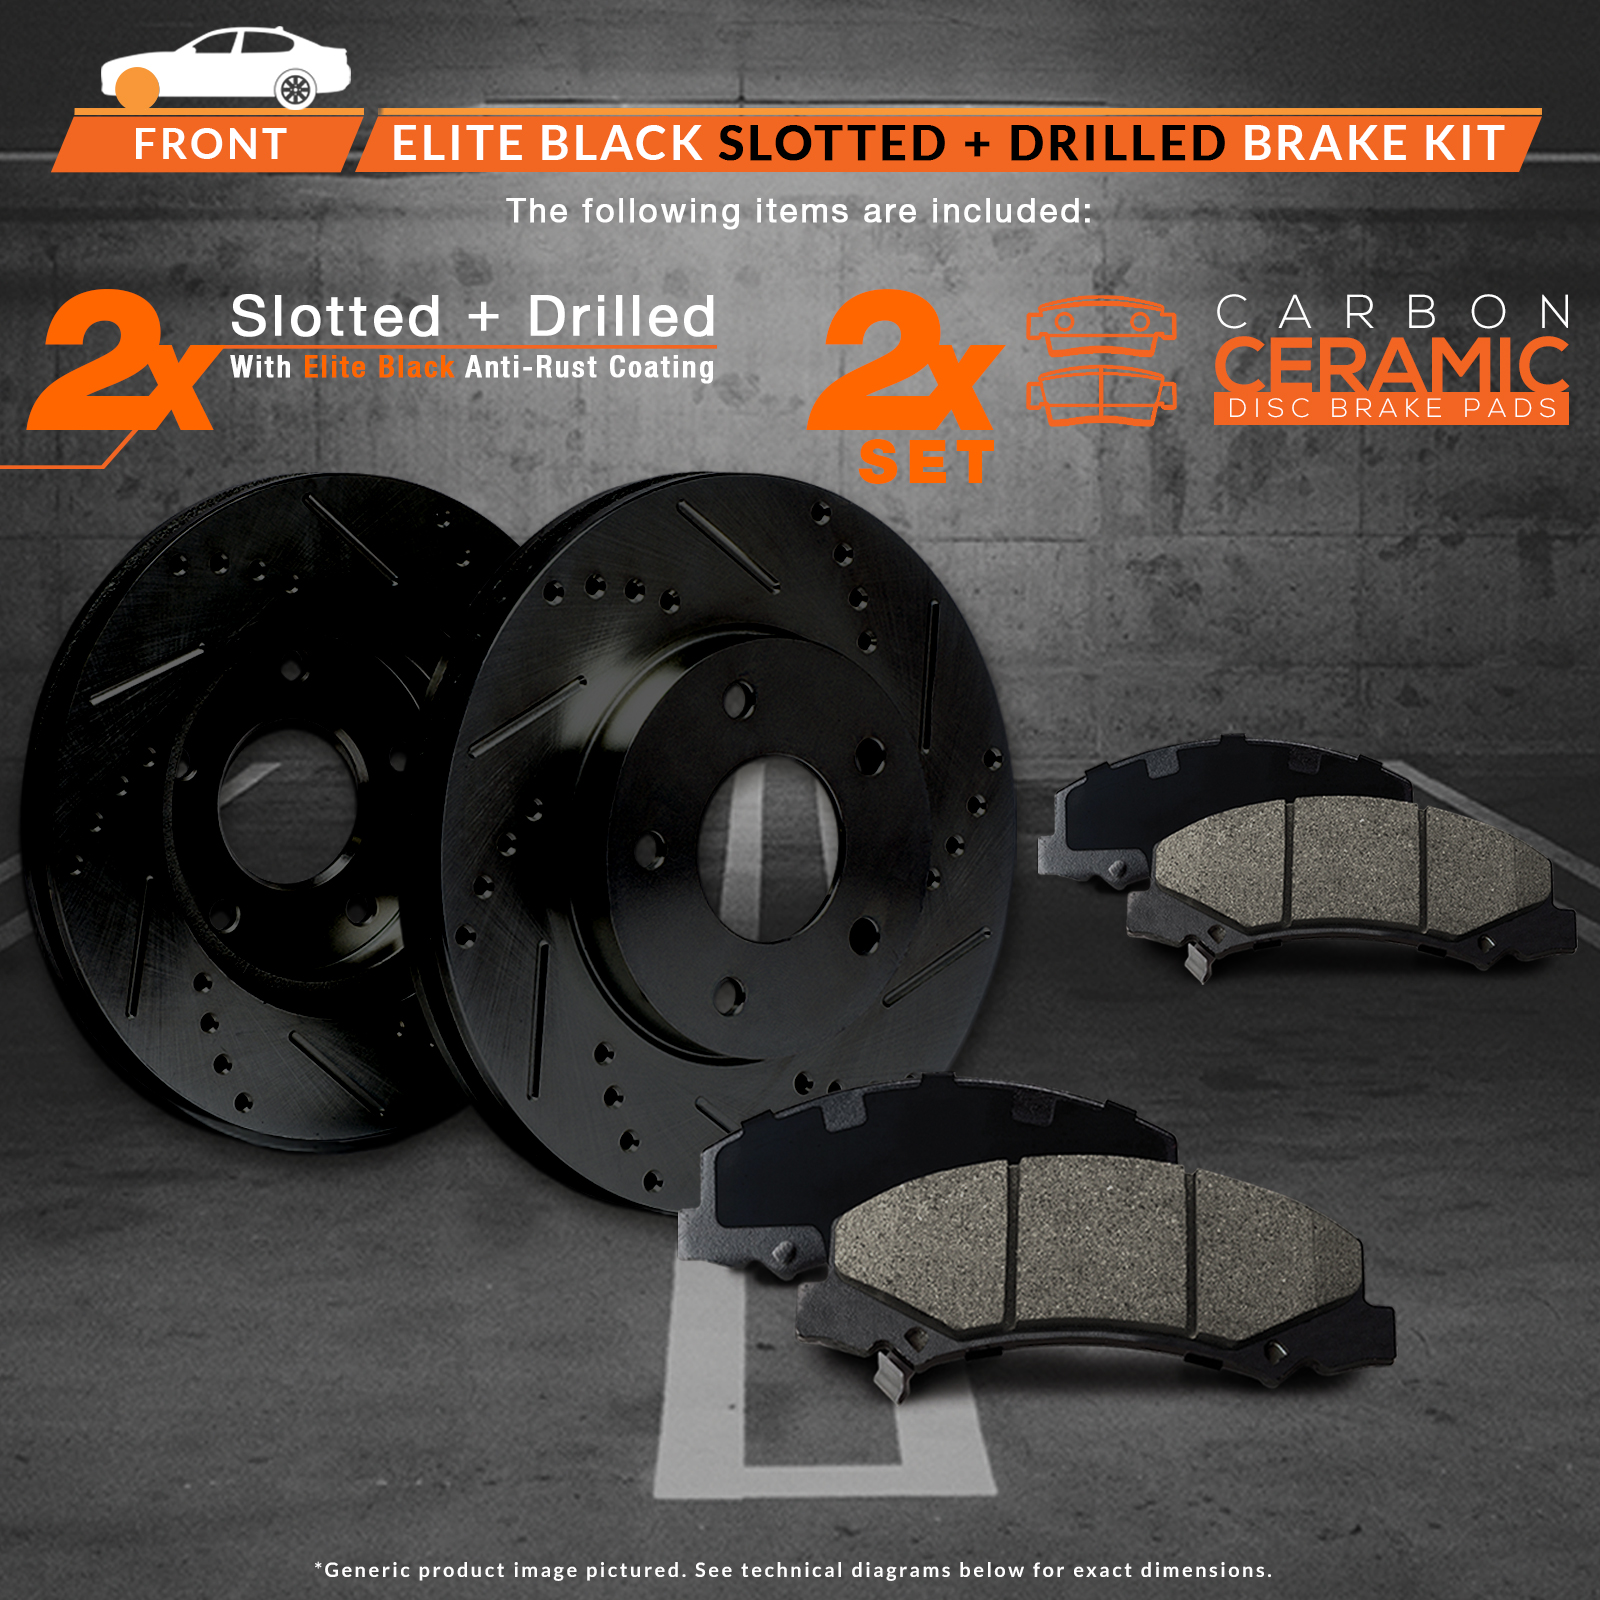 small resolution of max brakes front elite brake kit e coated slotted drilled rotors ceramic pads kt002181 fits 1996 96 1997 97 1998 98 1999 99 plymouth breeze